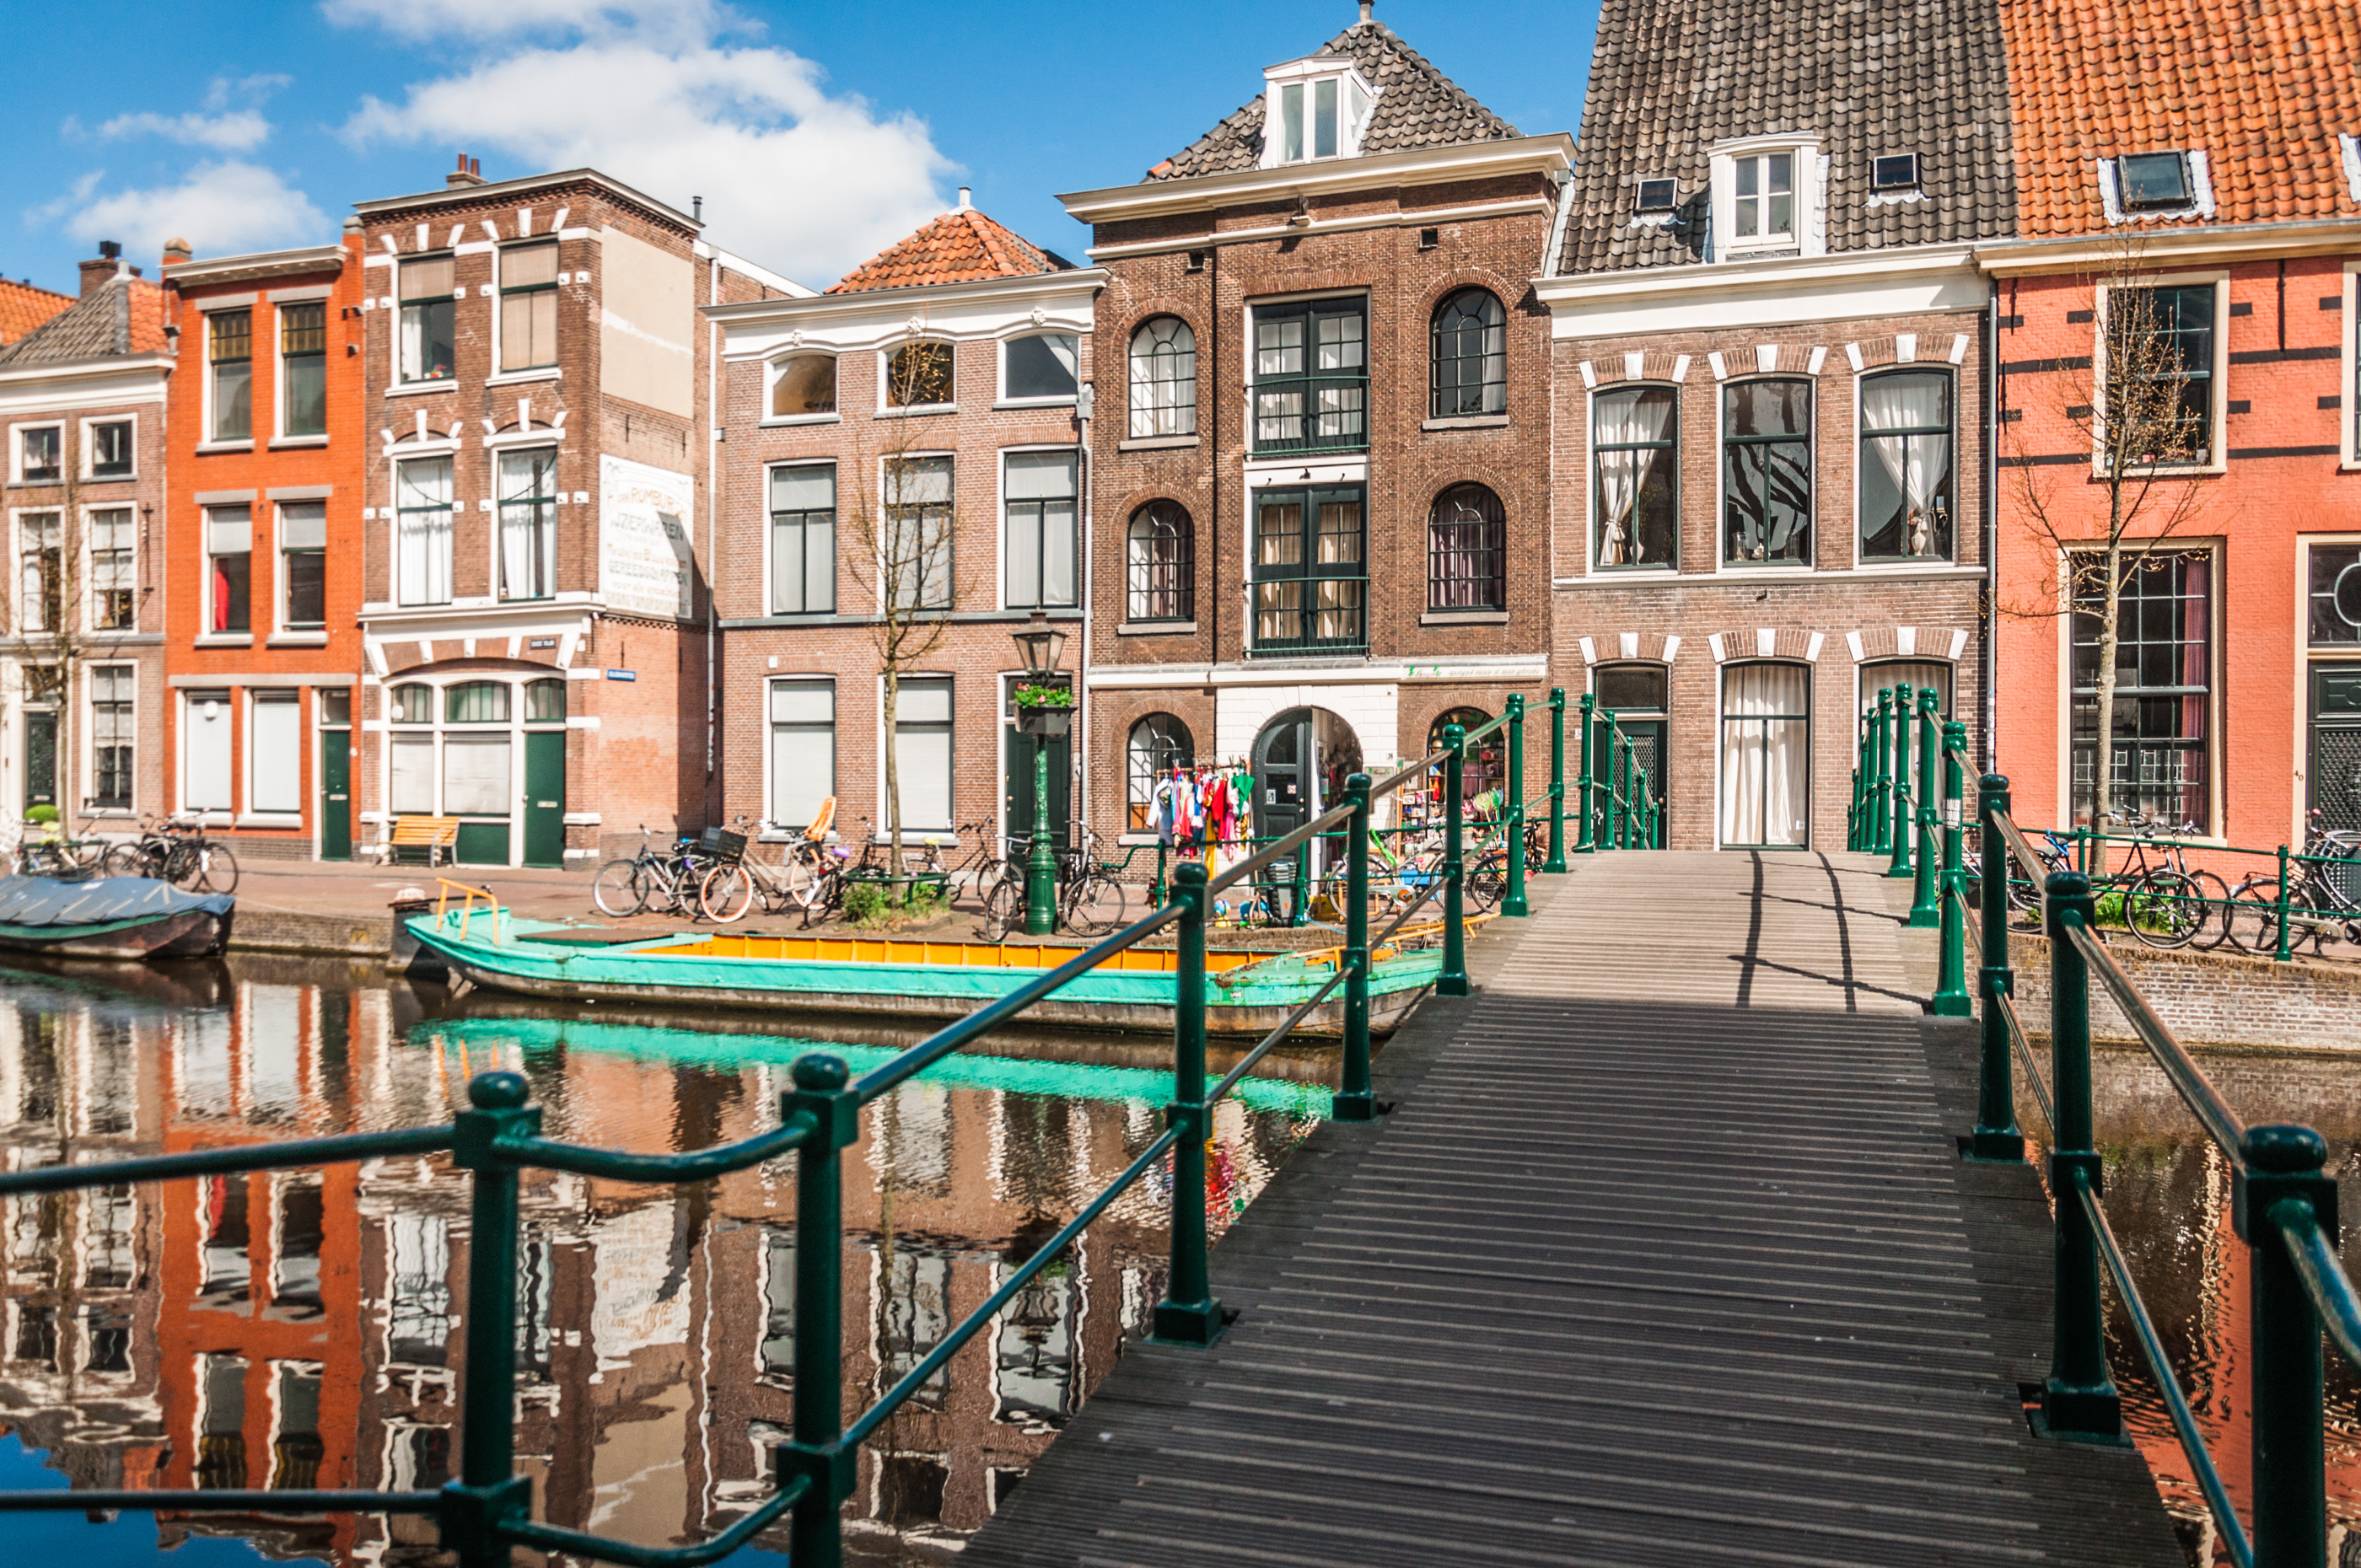 Dutch canal and houses photo